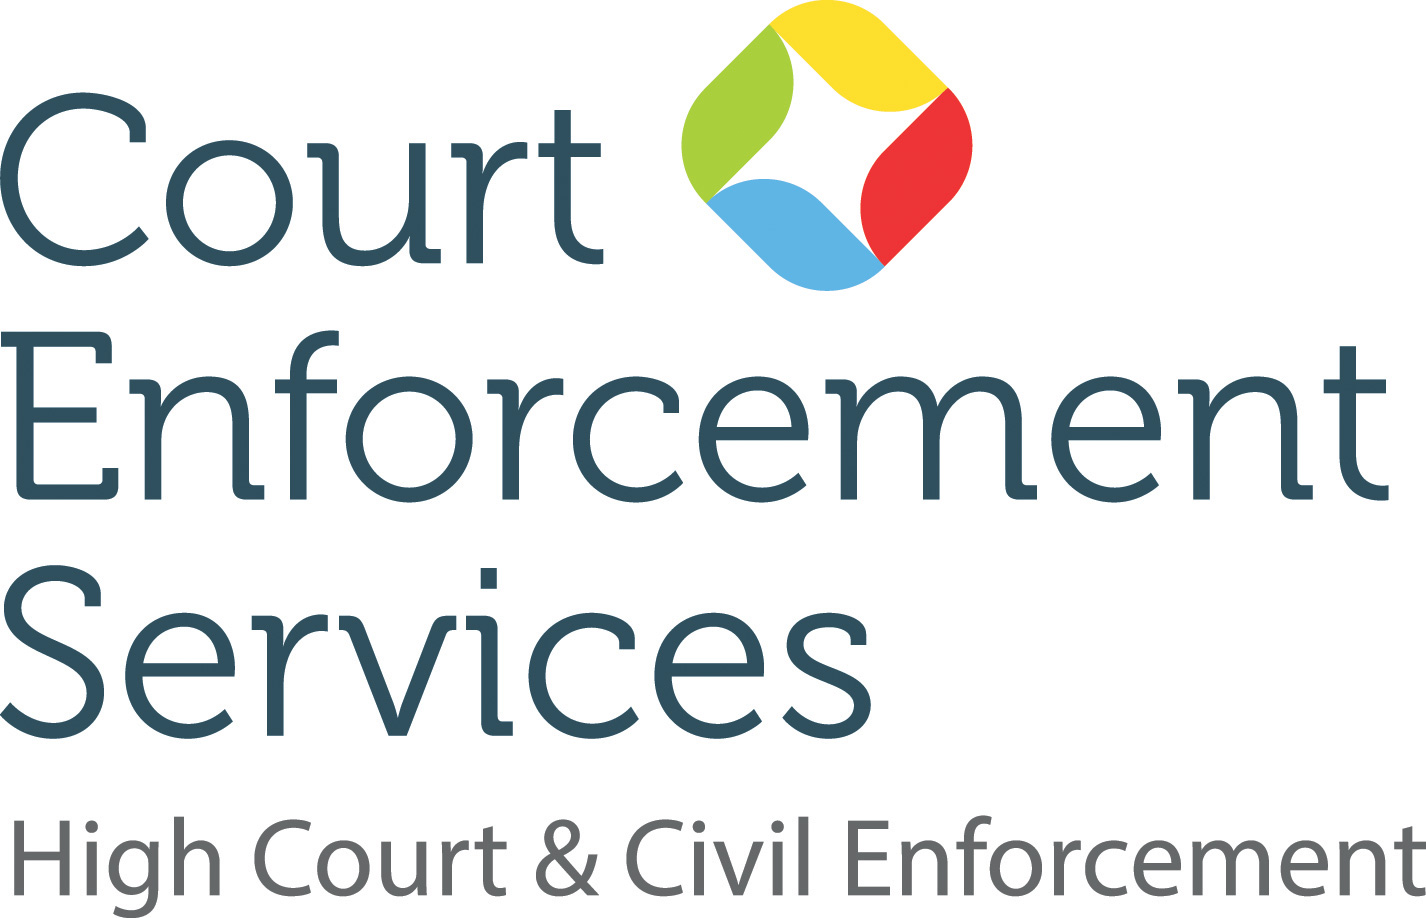 COURT ENFORCEMENT SERVICES LTD